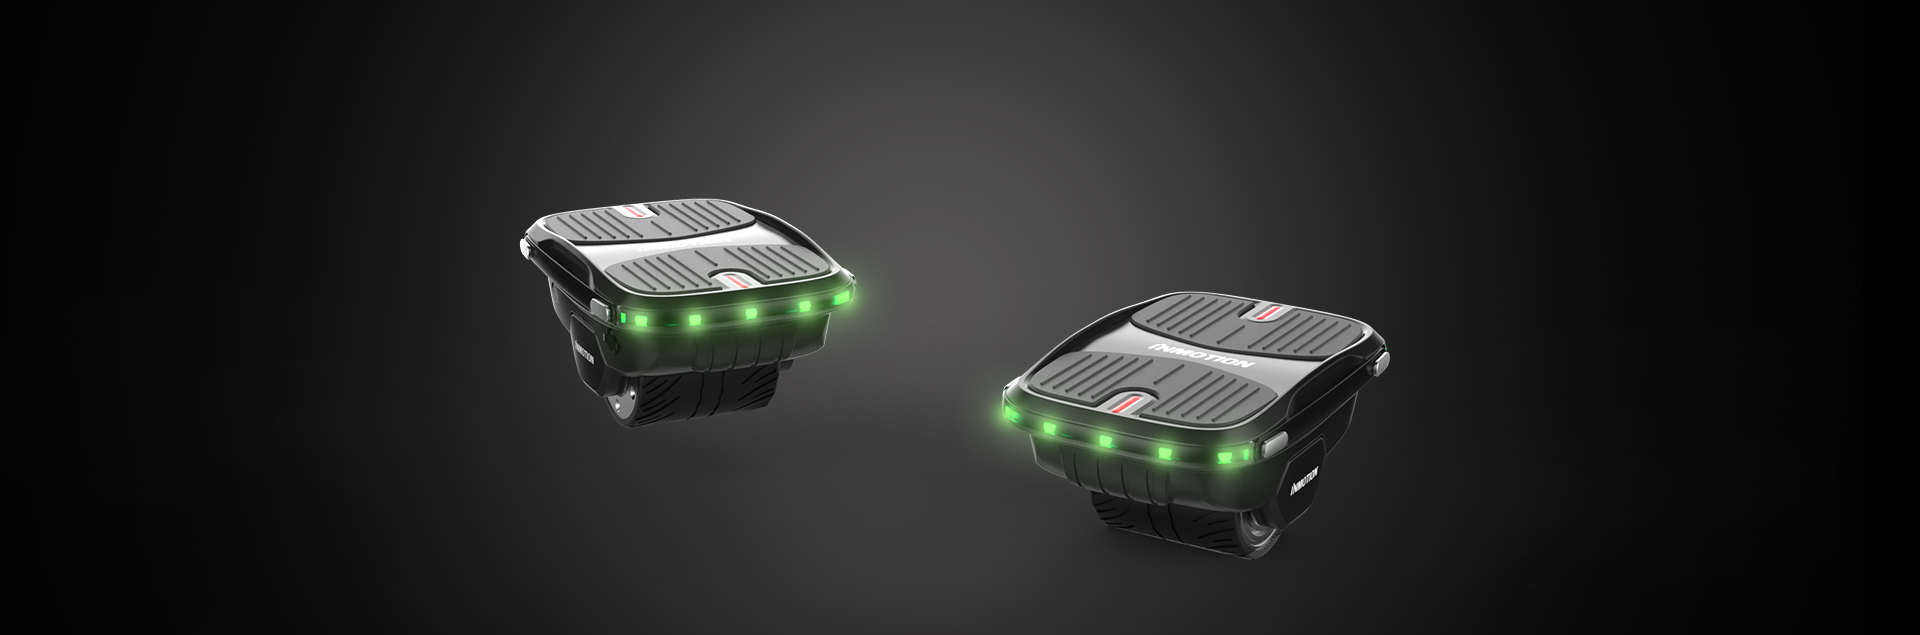 Smart Lamps on Hovershoes, For Decoration, Also Show the Conditions of X1, Much More Interesting than Roller Skates.